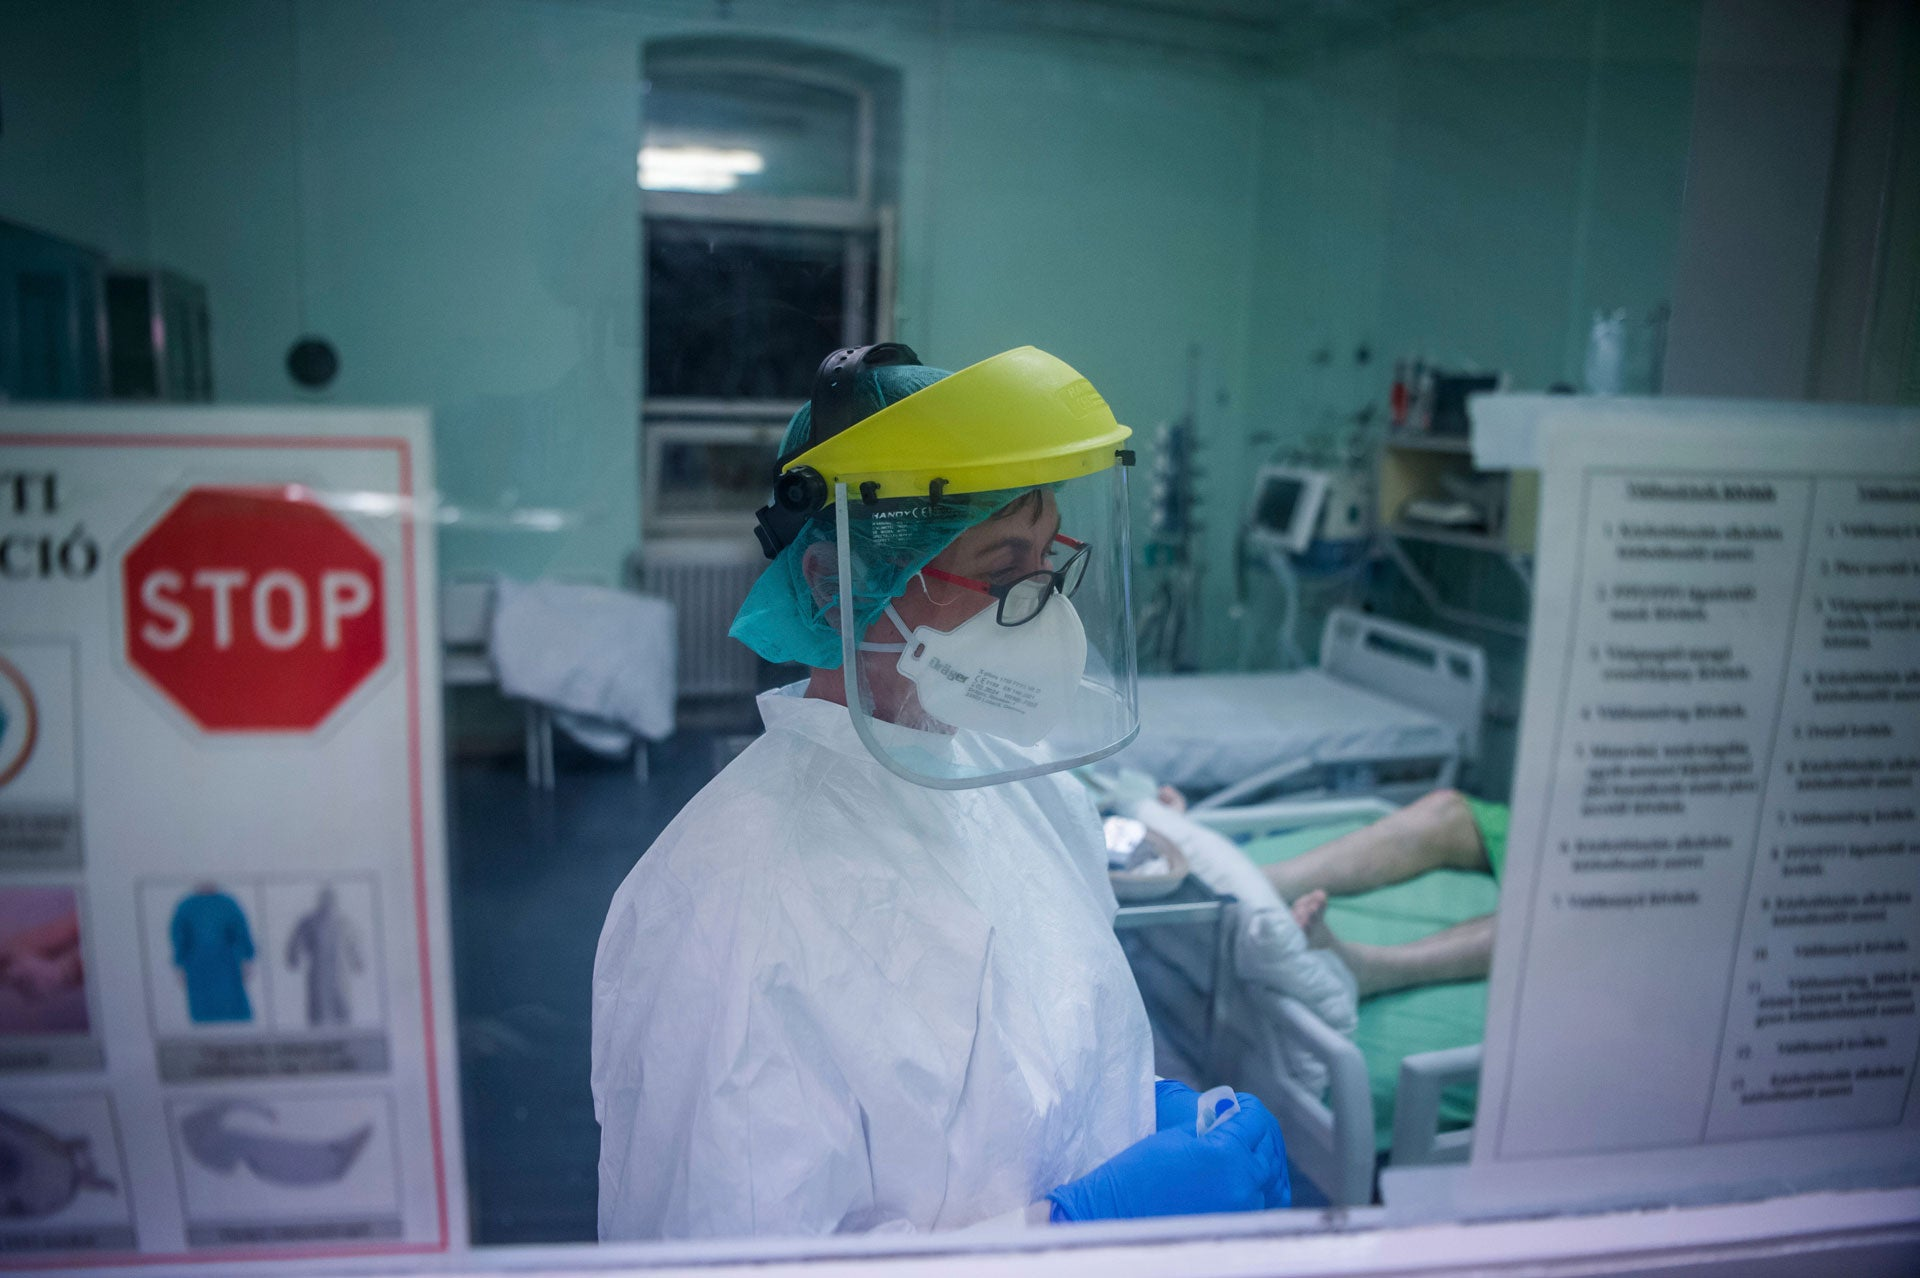 A nurse in protective gear works at the Szent Laszlo Hospital in Budapest, Hungary, during the Covid-19 pandemic, April 27, 2020.